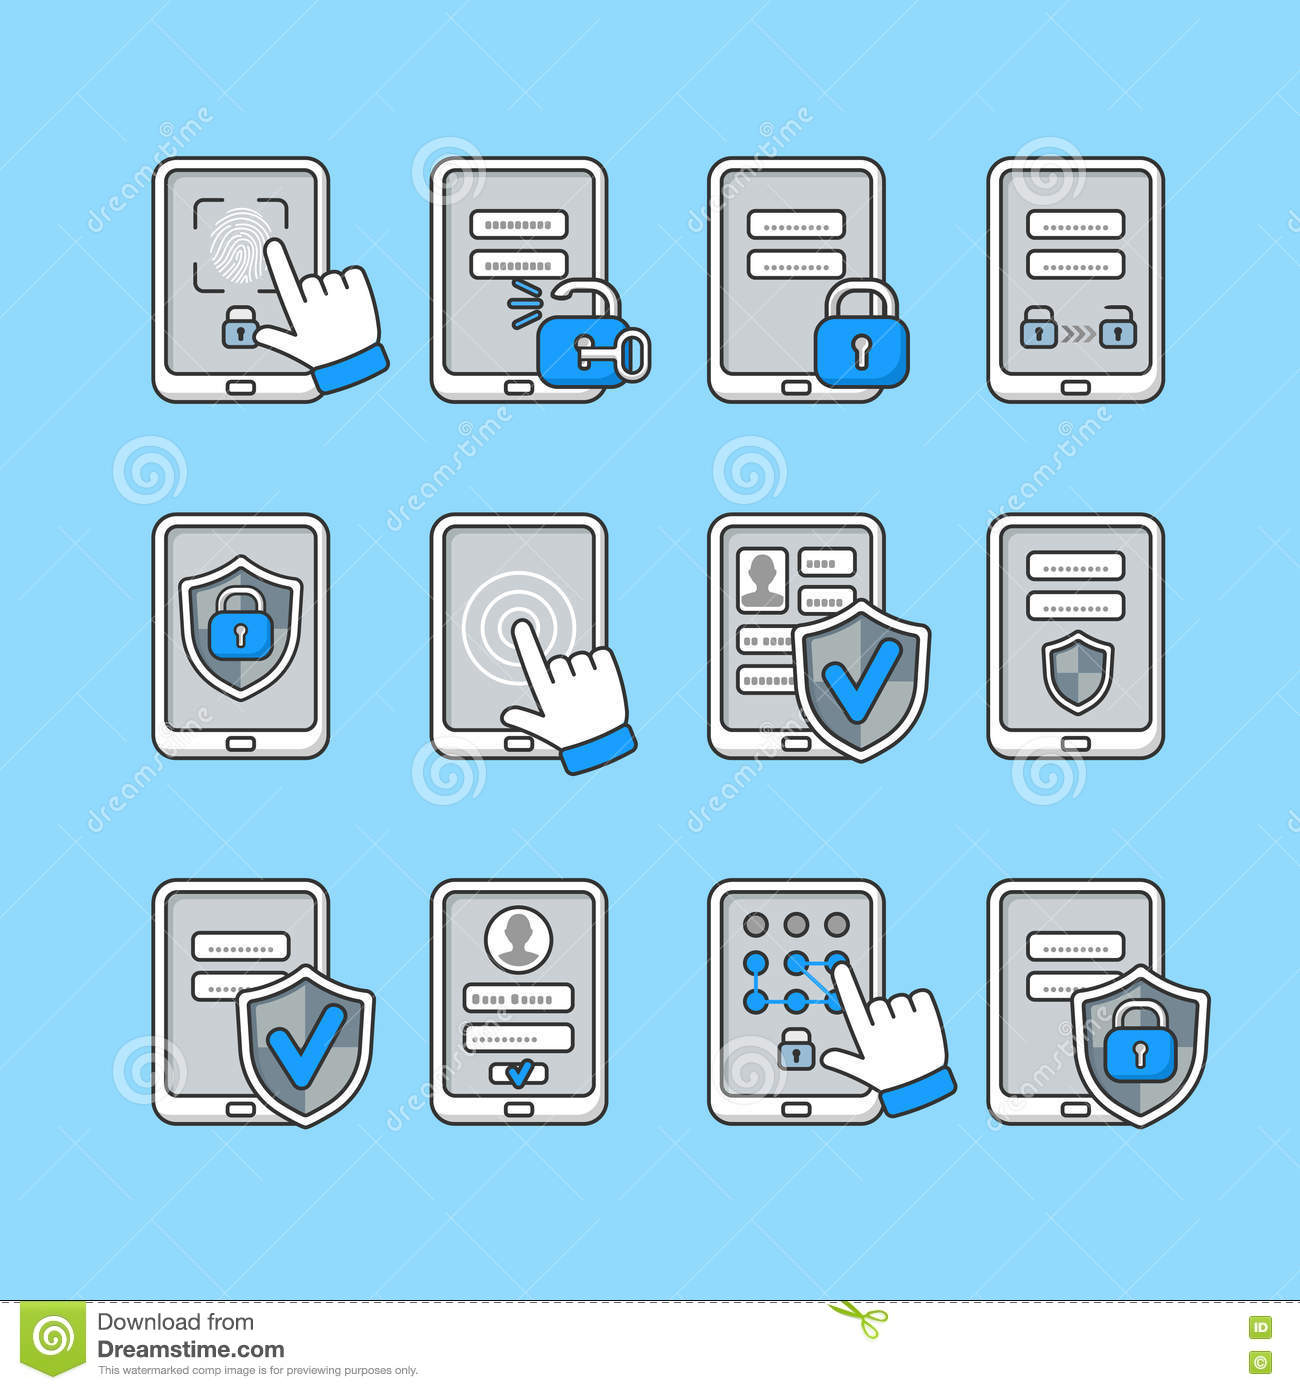 Smartphone security concept. Vector icons set of mobile security. Password key and lock on smartphone.